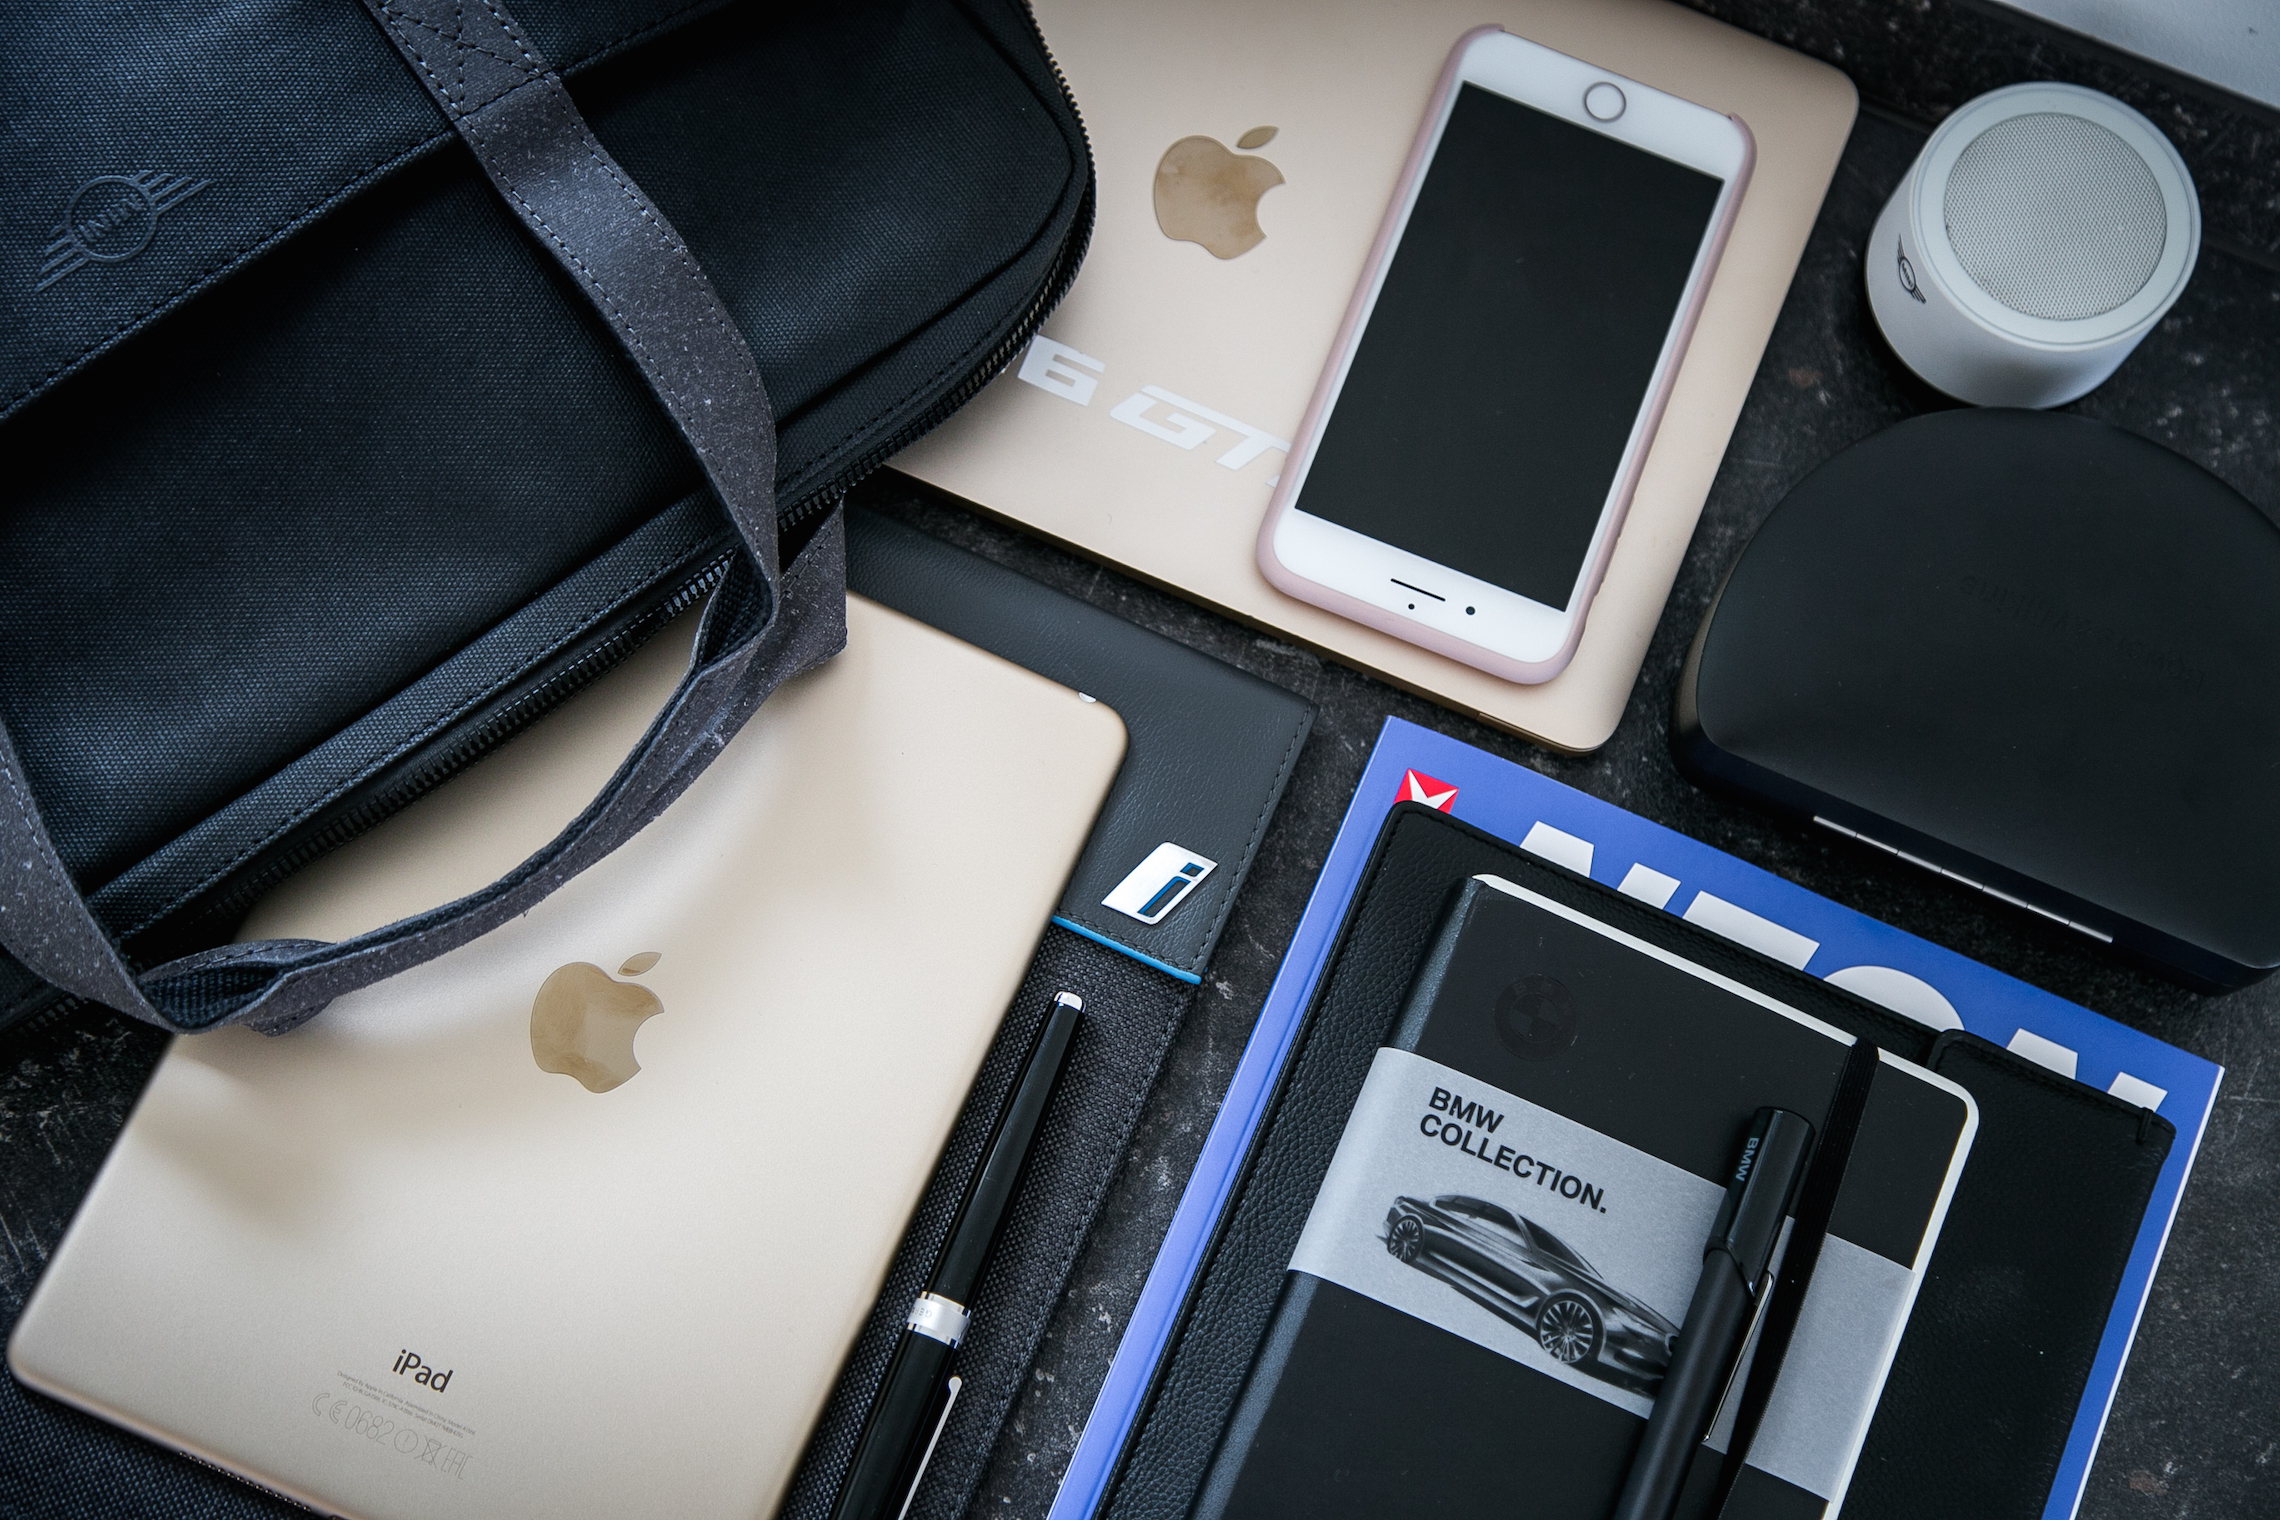 What`s in my Business bag BMW Bowers&Wilkens SanDisk Apple BMWCollection Moleskine Mini iPad MacBook Taschen Bags PepperAndGold